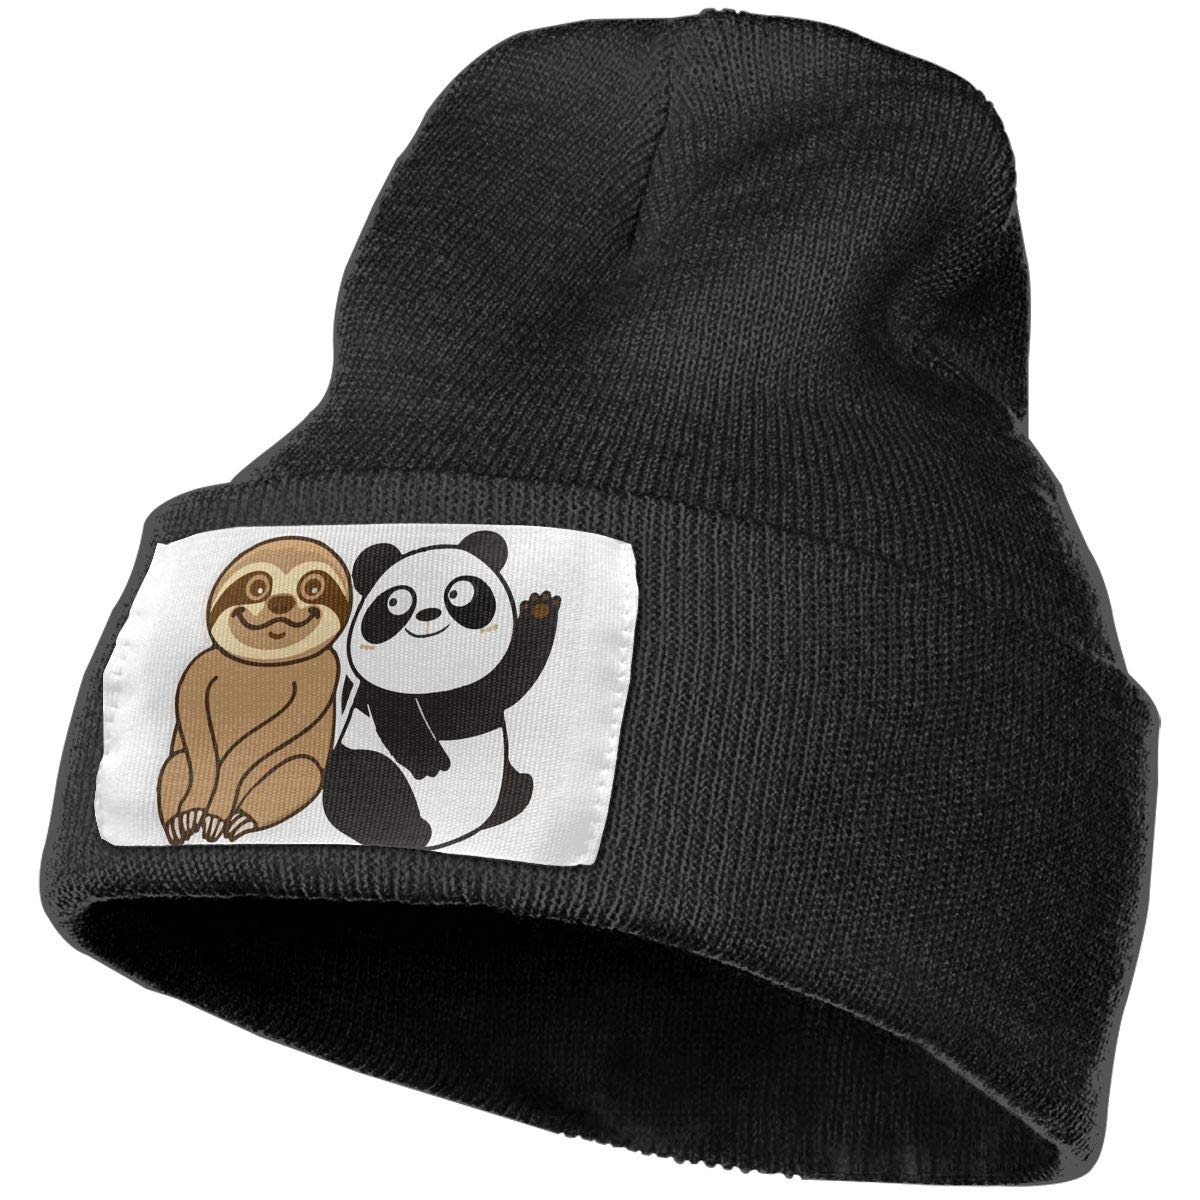 4c0ee4438aca9 Amazon.com  Sloth And Panda Beanie Hat Winter Warm Knit Hat Daily Slouchy  Outdoor Skull Cap For Men Women Watch Cap  Clothing